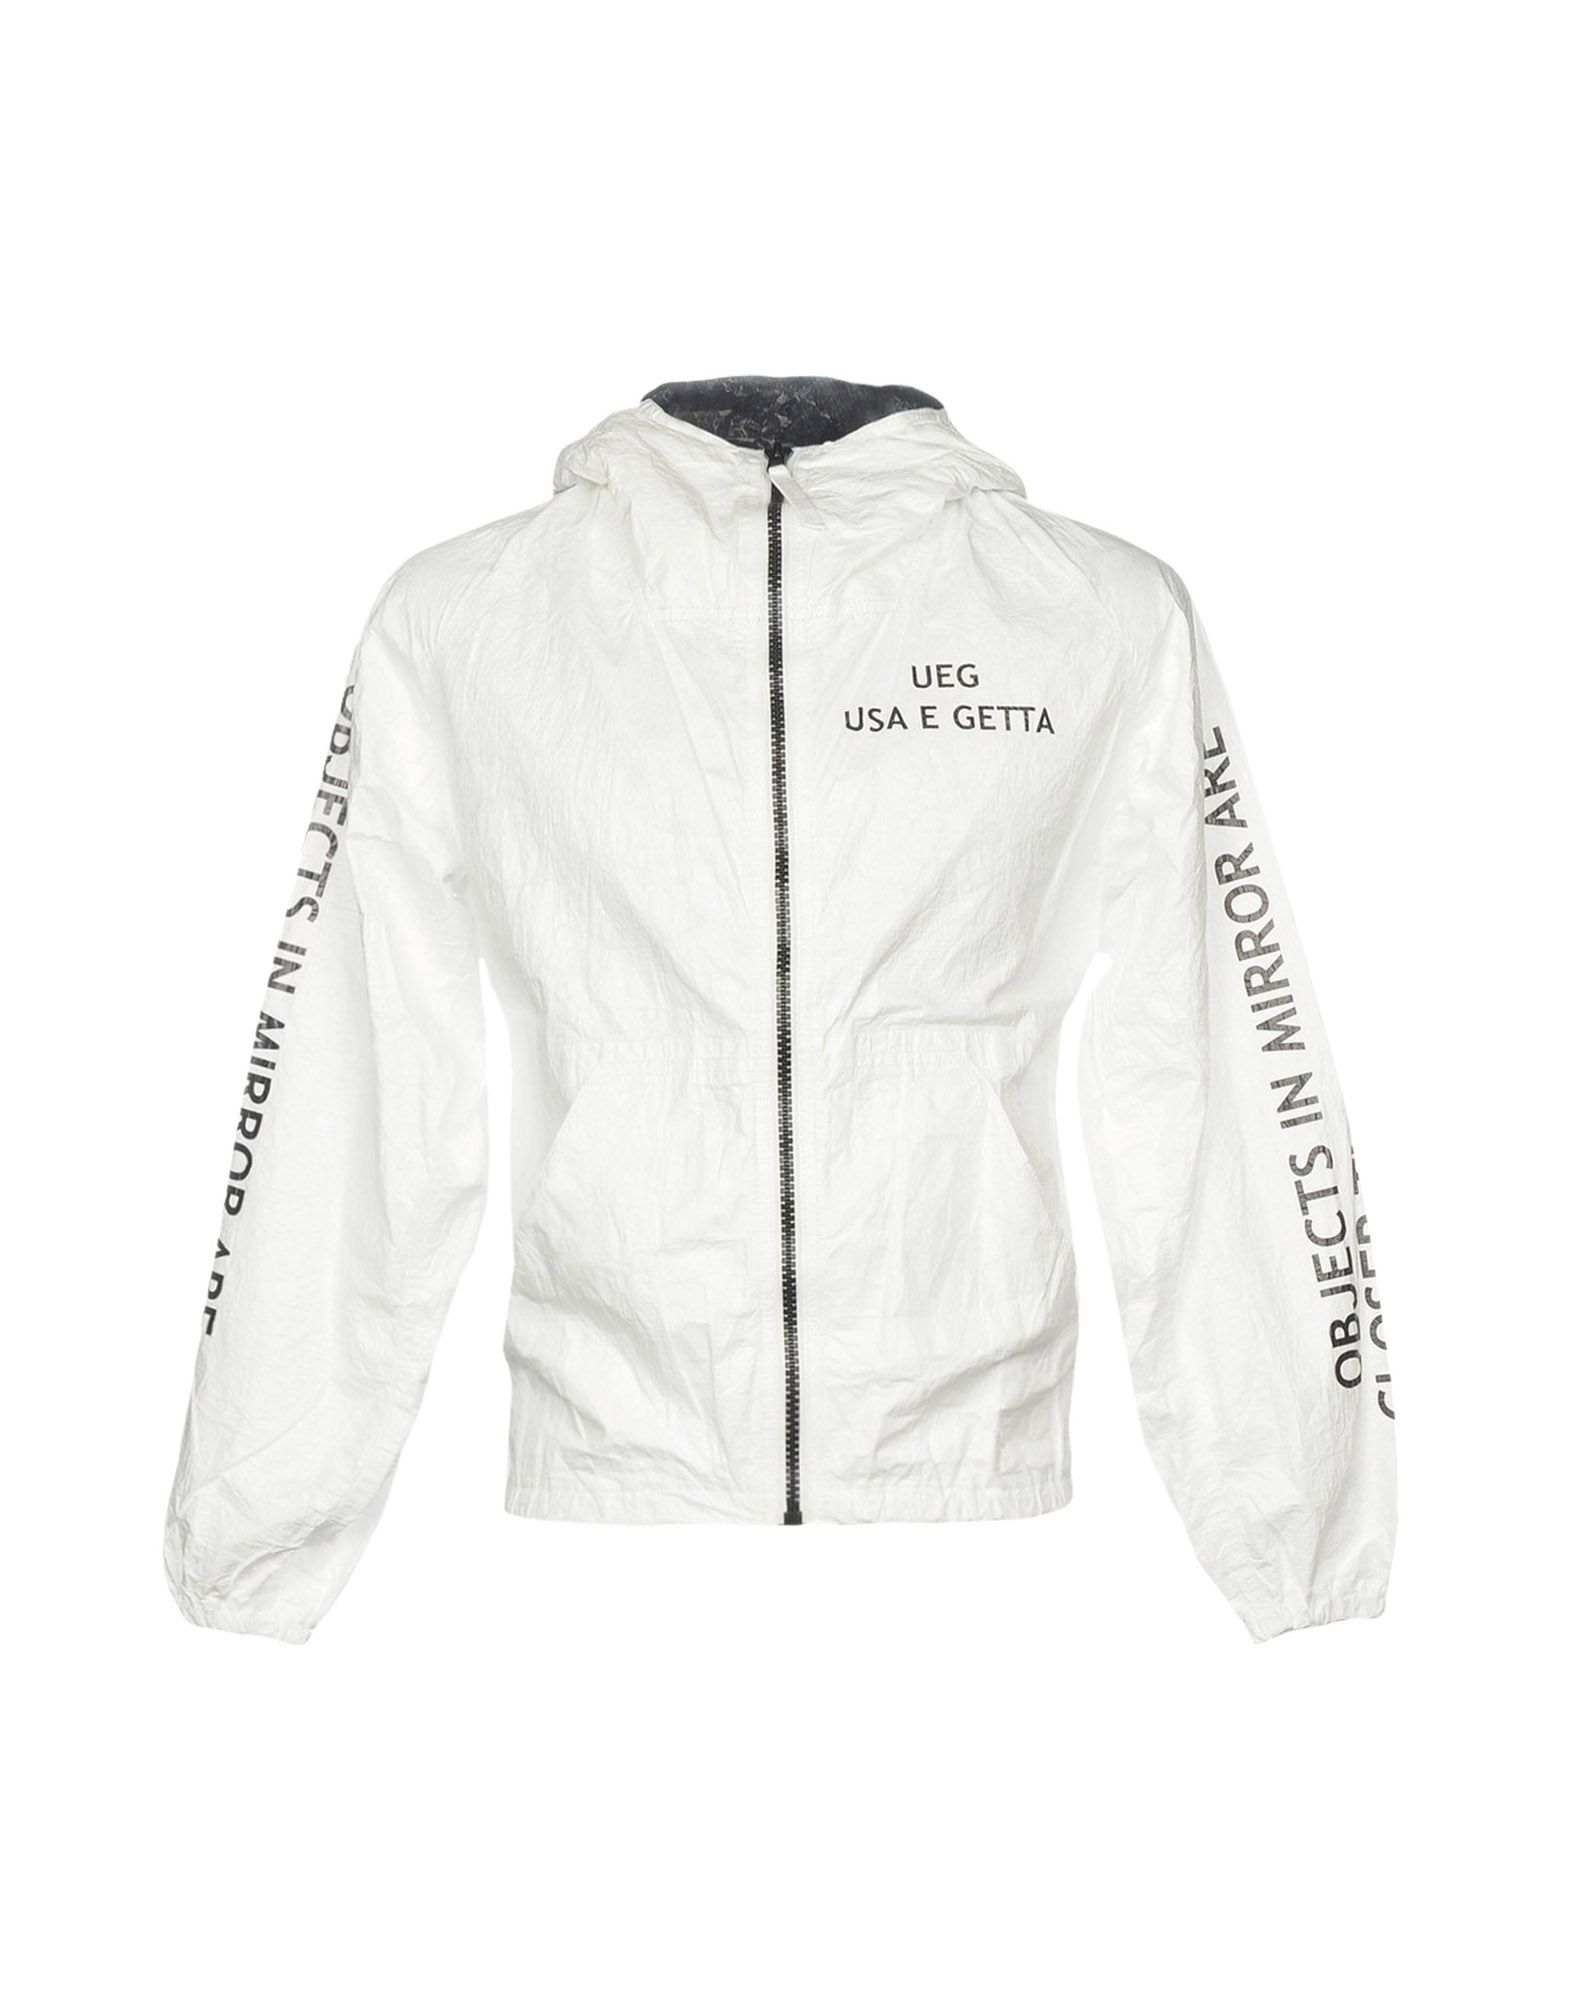 UEG Jacket in White